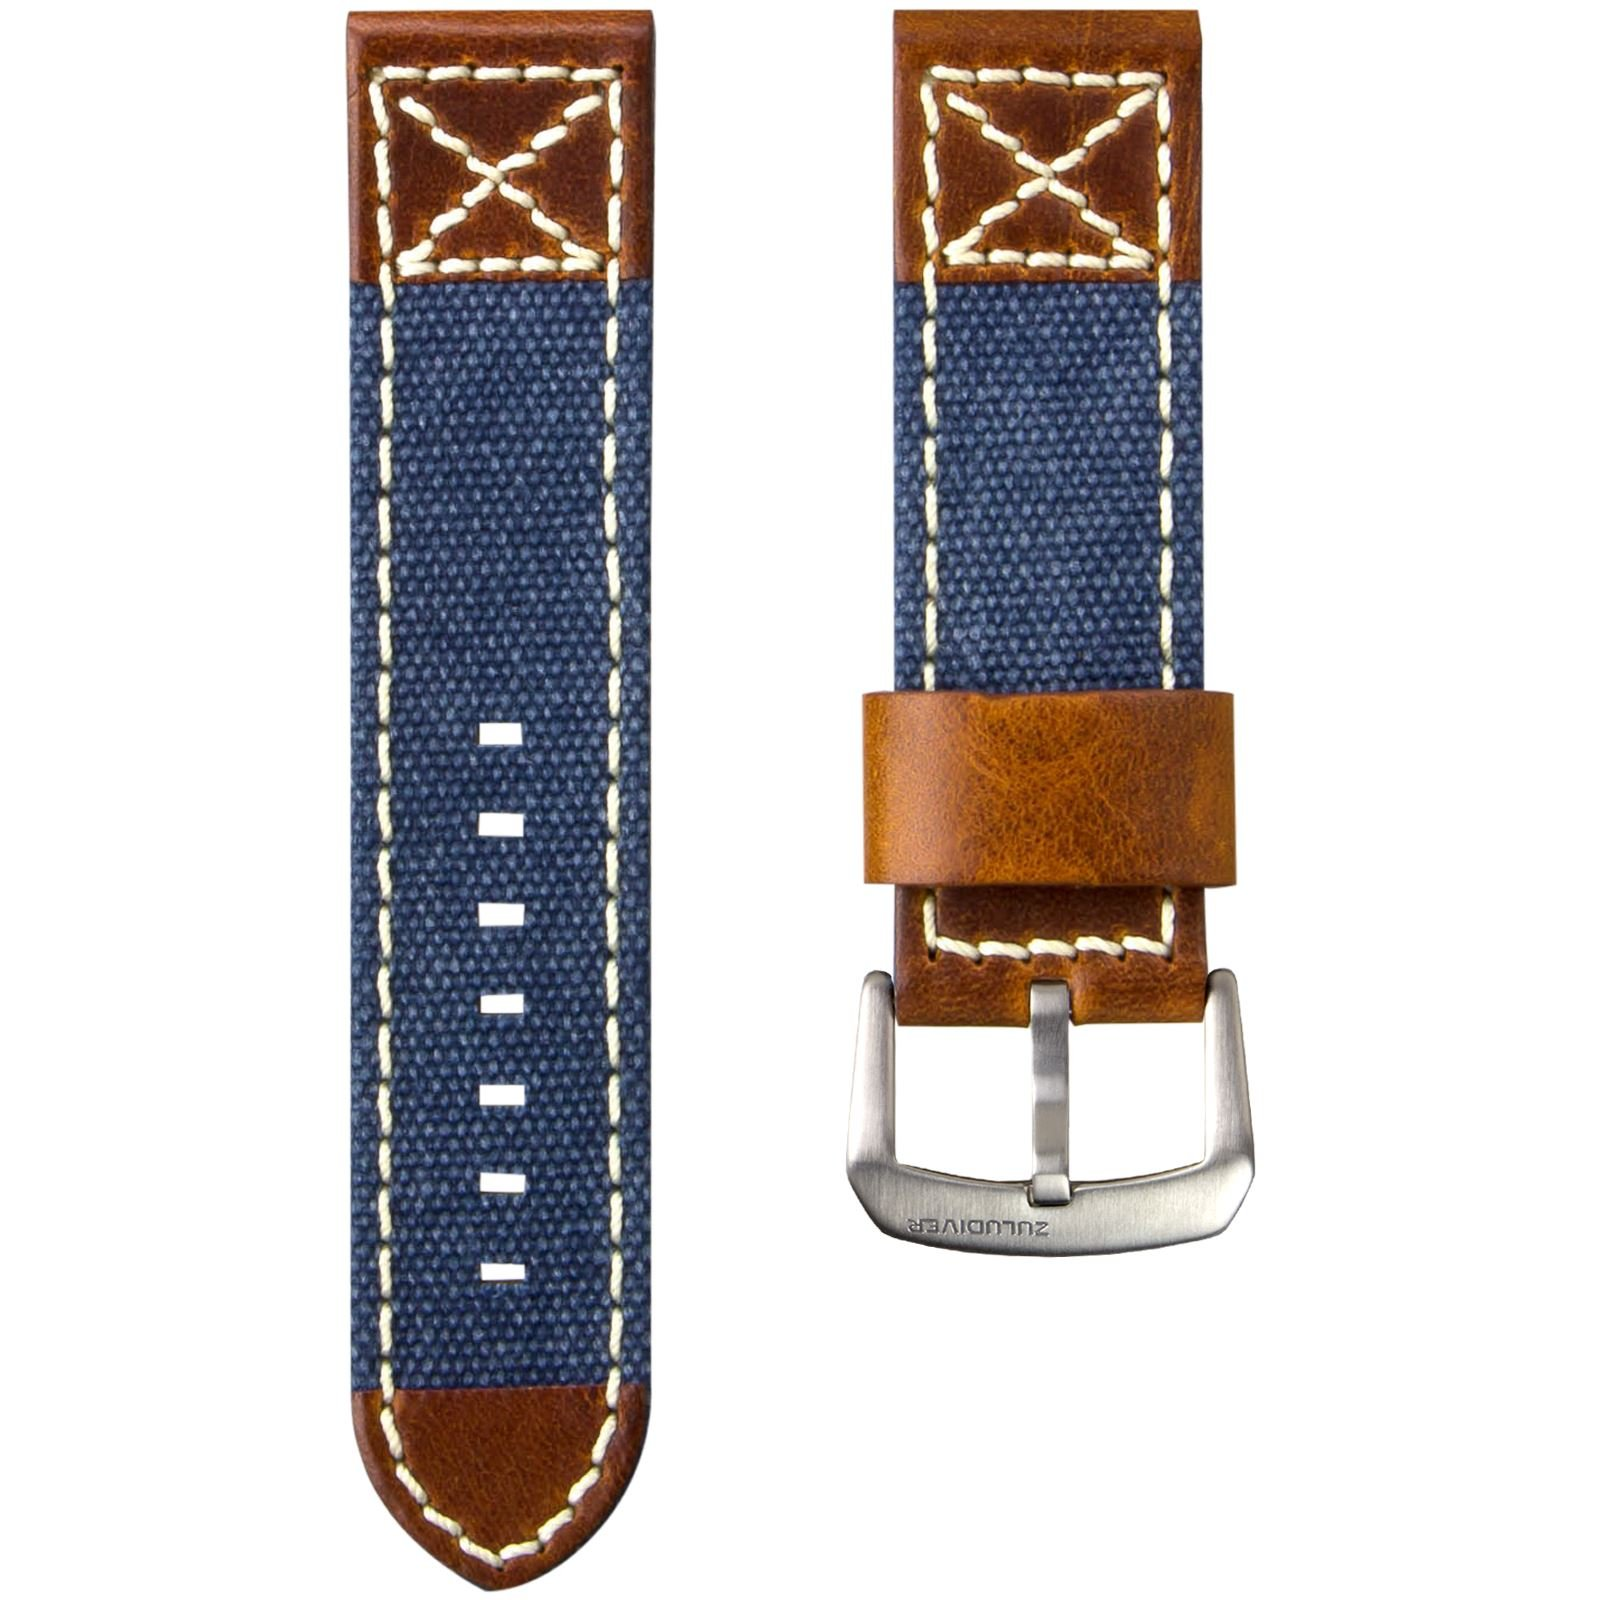 ZULUDIVER Canvas & Italian Leather Watch Strap, Navy Blue & Vintage Brown, 24mm